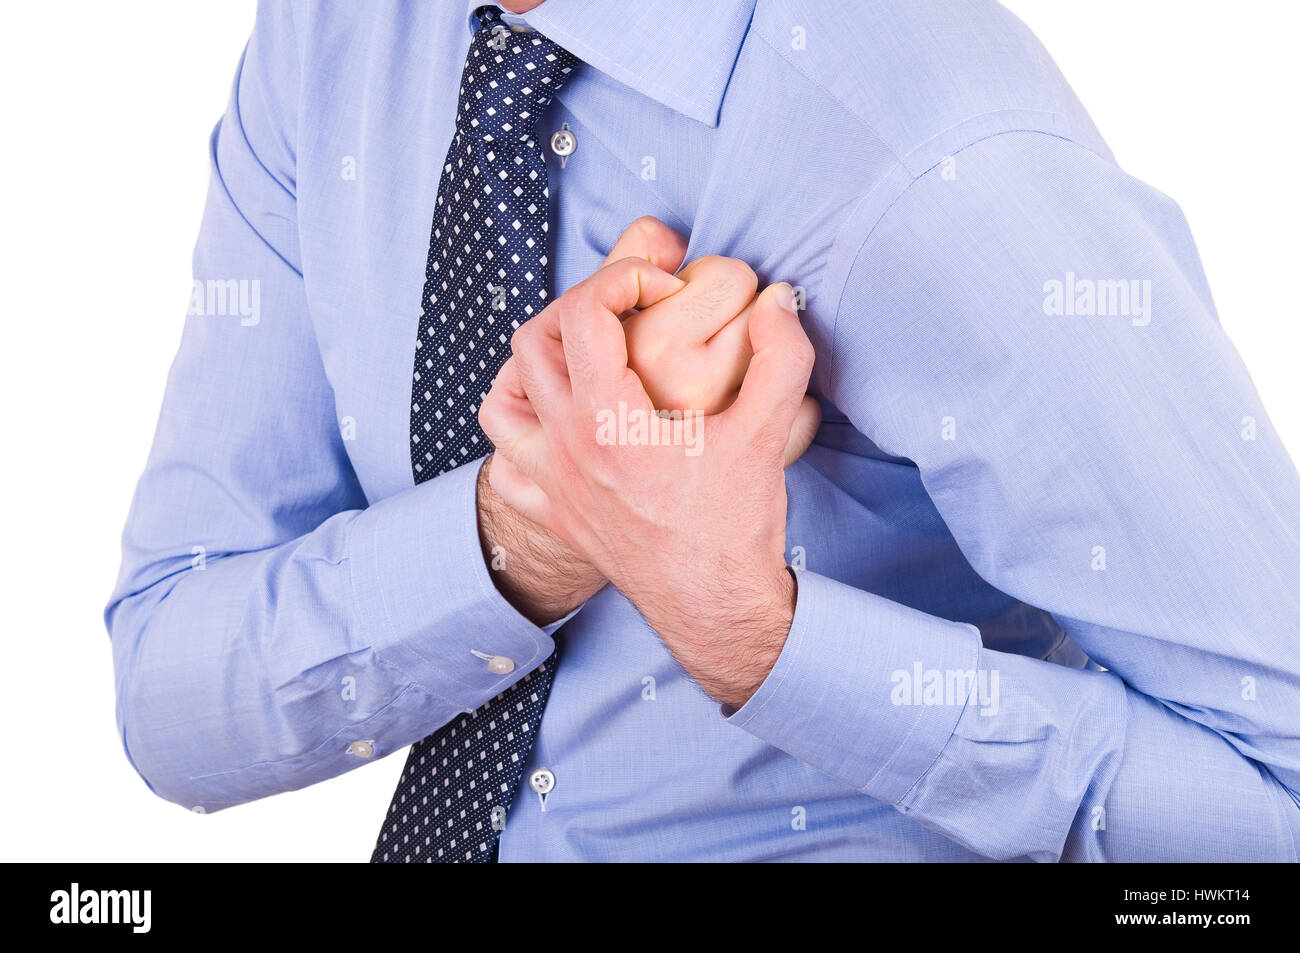 Businessman with heart attack. - Stock Image